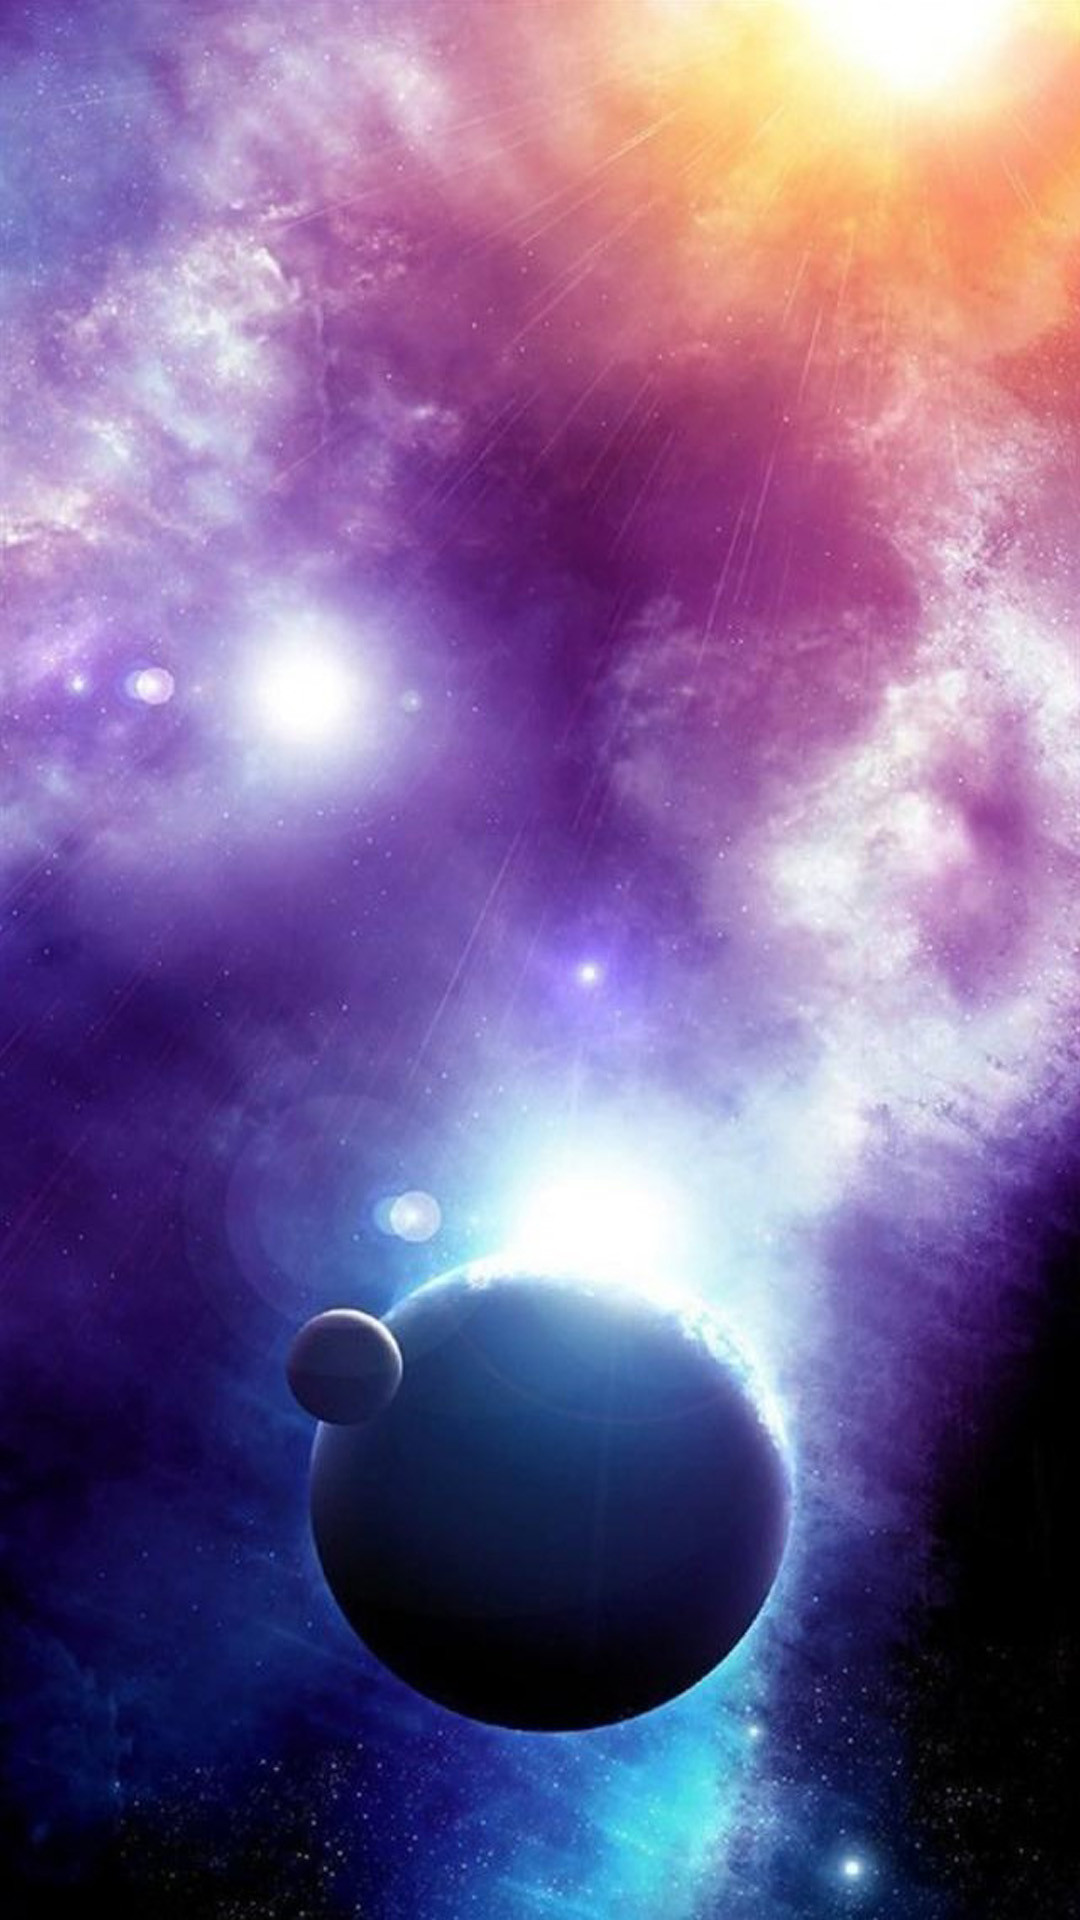 Iphone 6 space wallpaper hd 77 images 1080x1920 iphone space pictures windows wallpapers hd download free background images mac windows 10 tablet 1080x1920 voltagebd